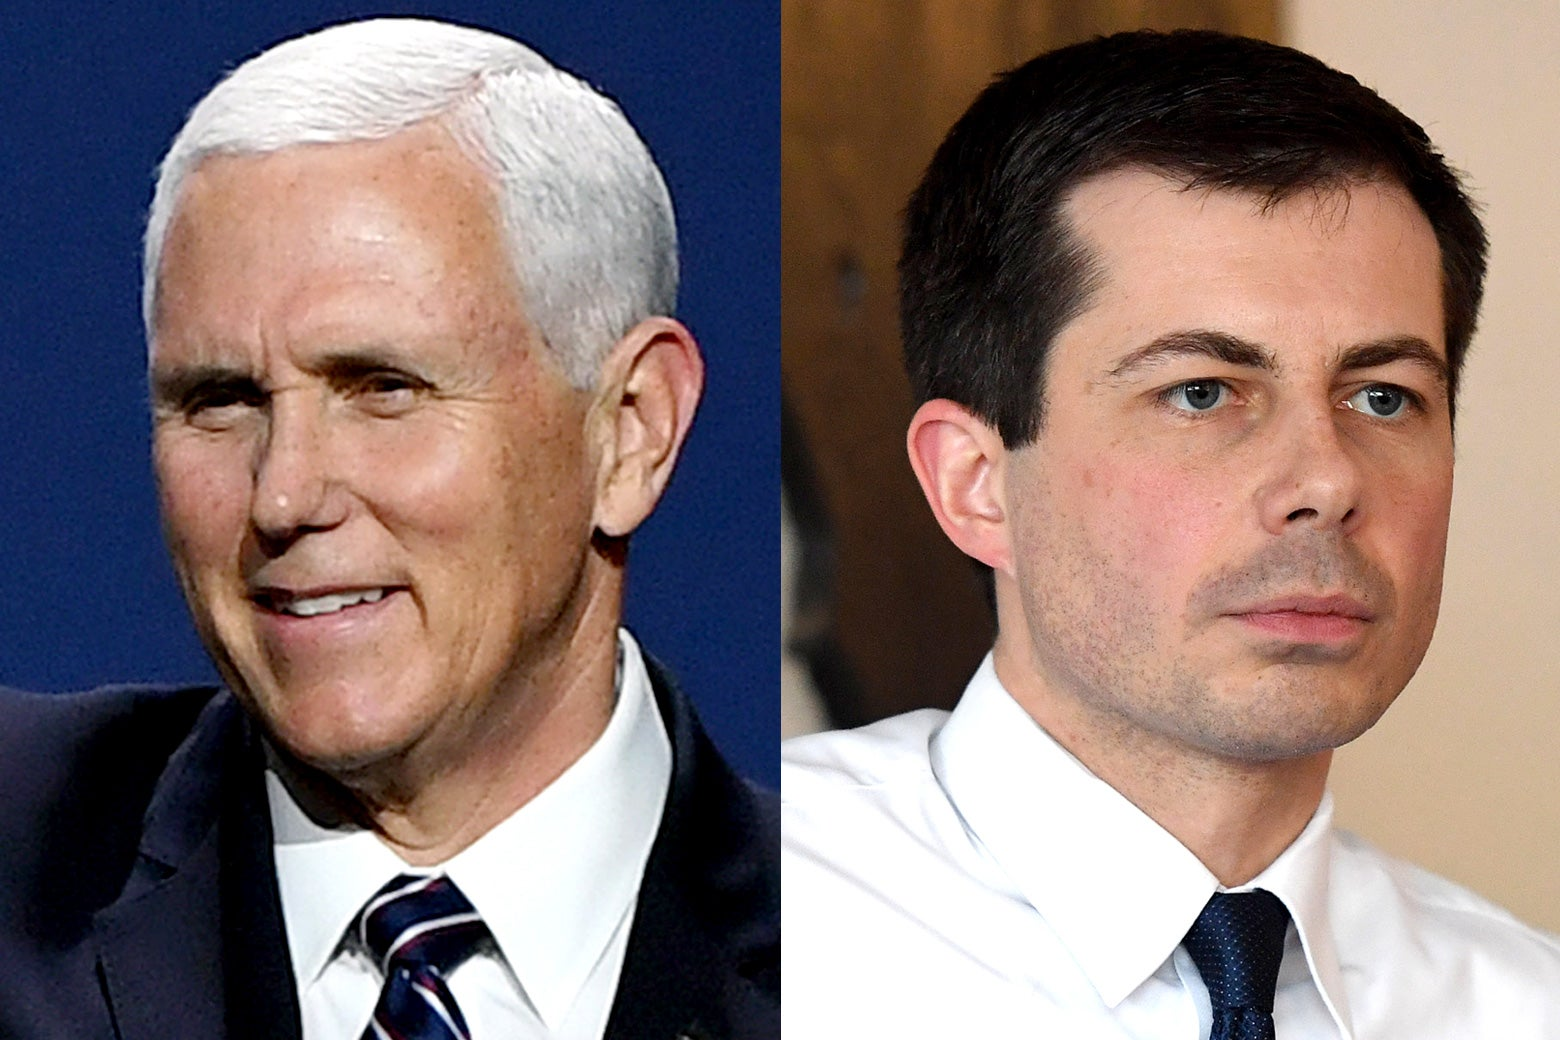 Mike Pence and Pete Buttigieg.